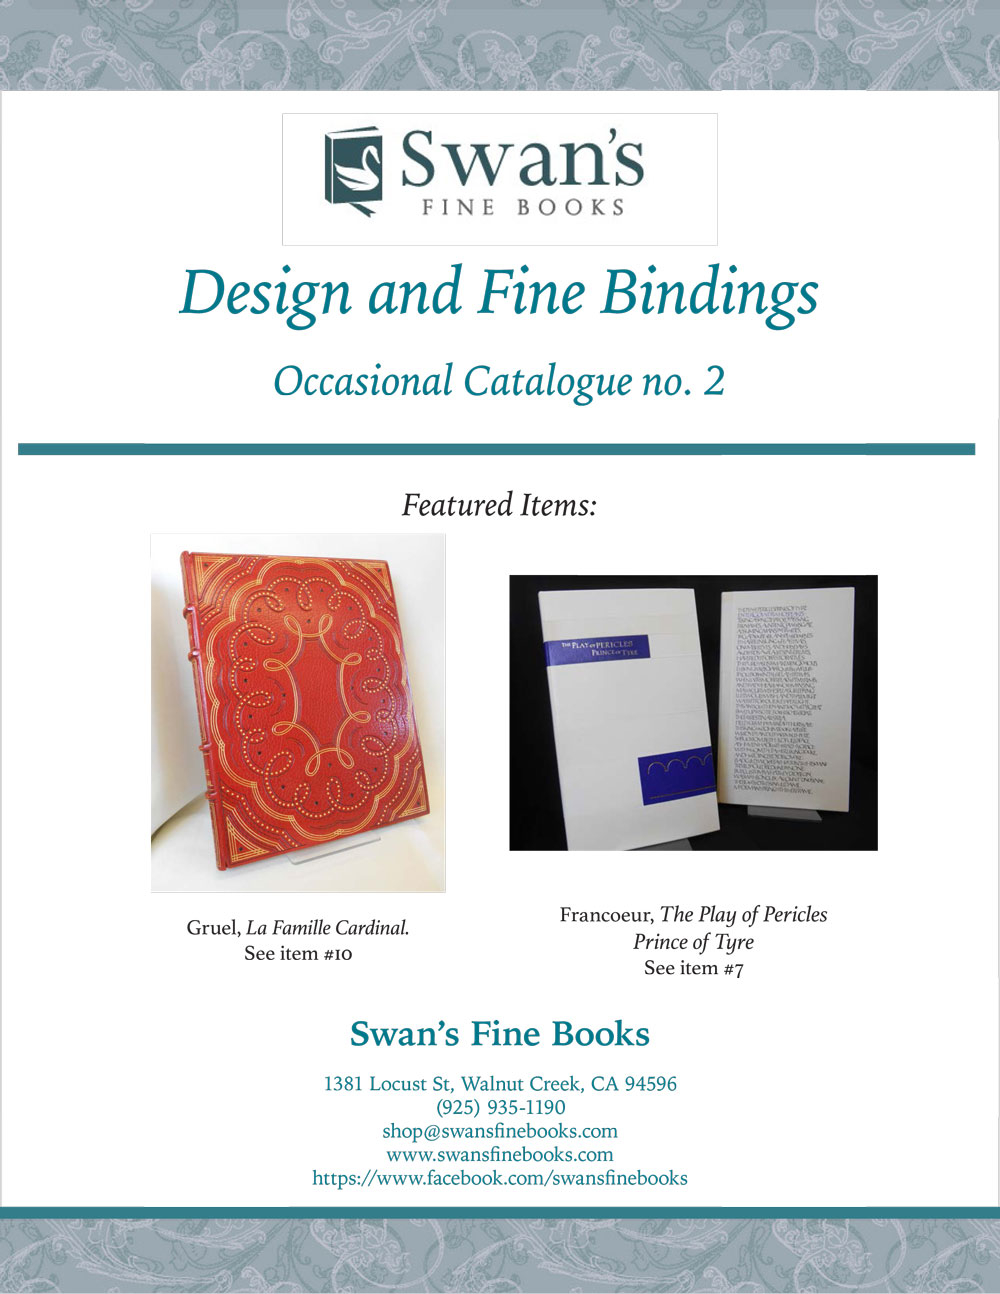 Catalogue 2 – Design and Fine Bindings